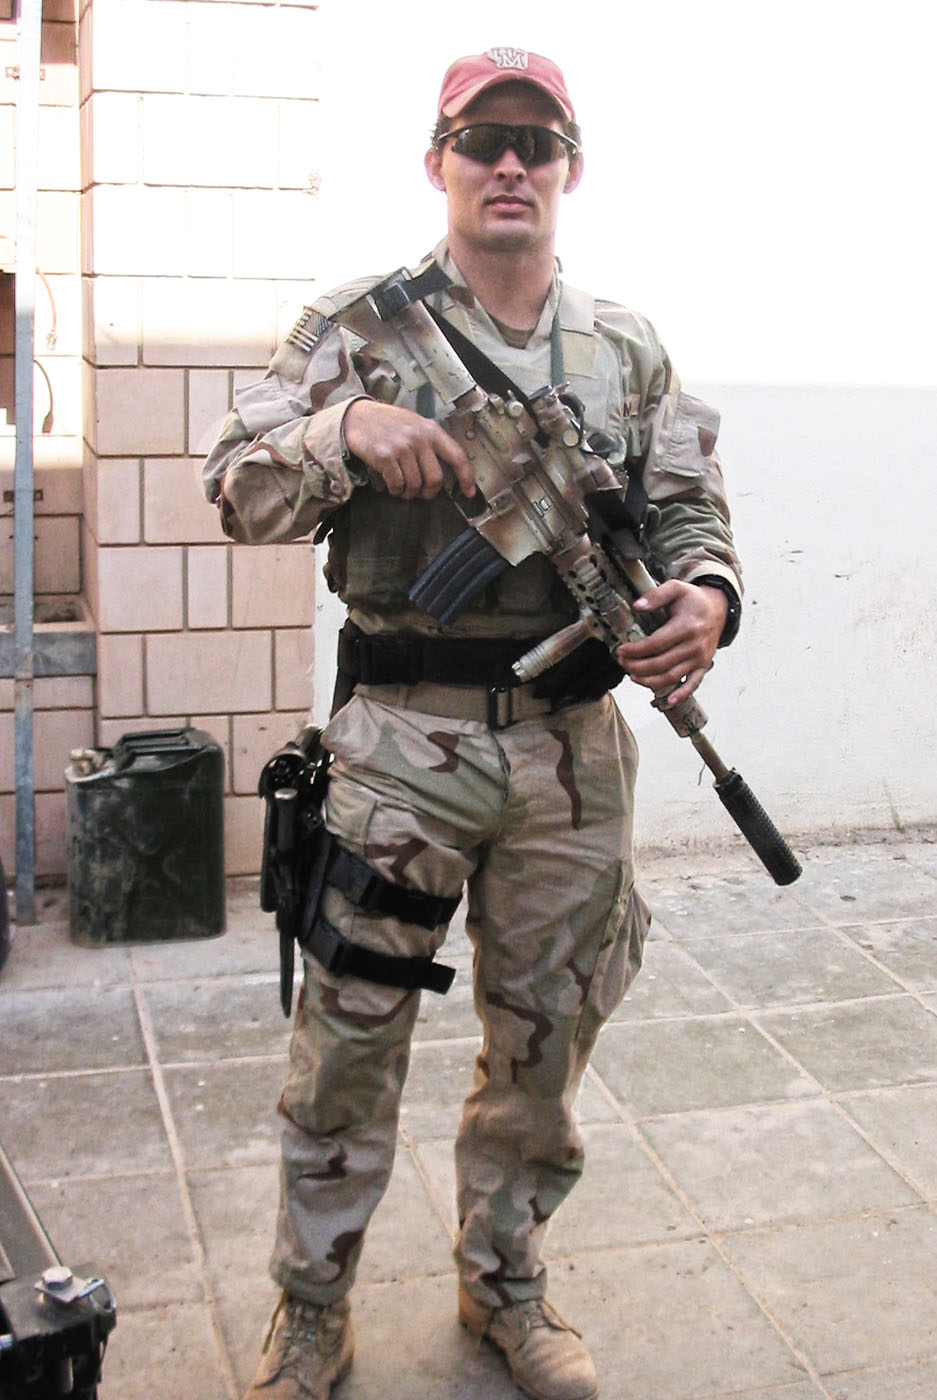 U.S. Army Staff Sergeant Aaron N. Holleyman, 27, of Glasgow, MS, assigned to the 1st Battalion, 5th Special Forces Group, based in Fort Campbell, KY, was killed on August 30, 2004, when his Mileitary vehicle hit an improvised explosive device in Khutayiah, Iraq.  He is survived by his daughters Shelby and Erin, son Zachary, parents Ross and Glenda, and siblings Kelly and Daniel.